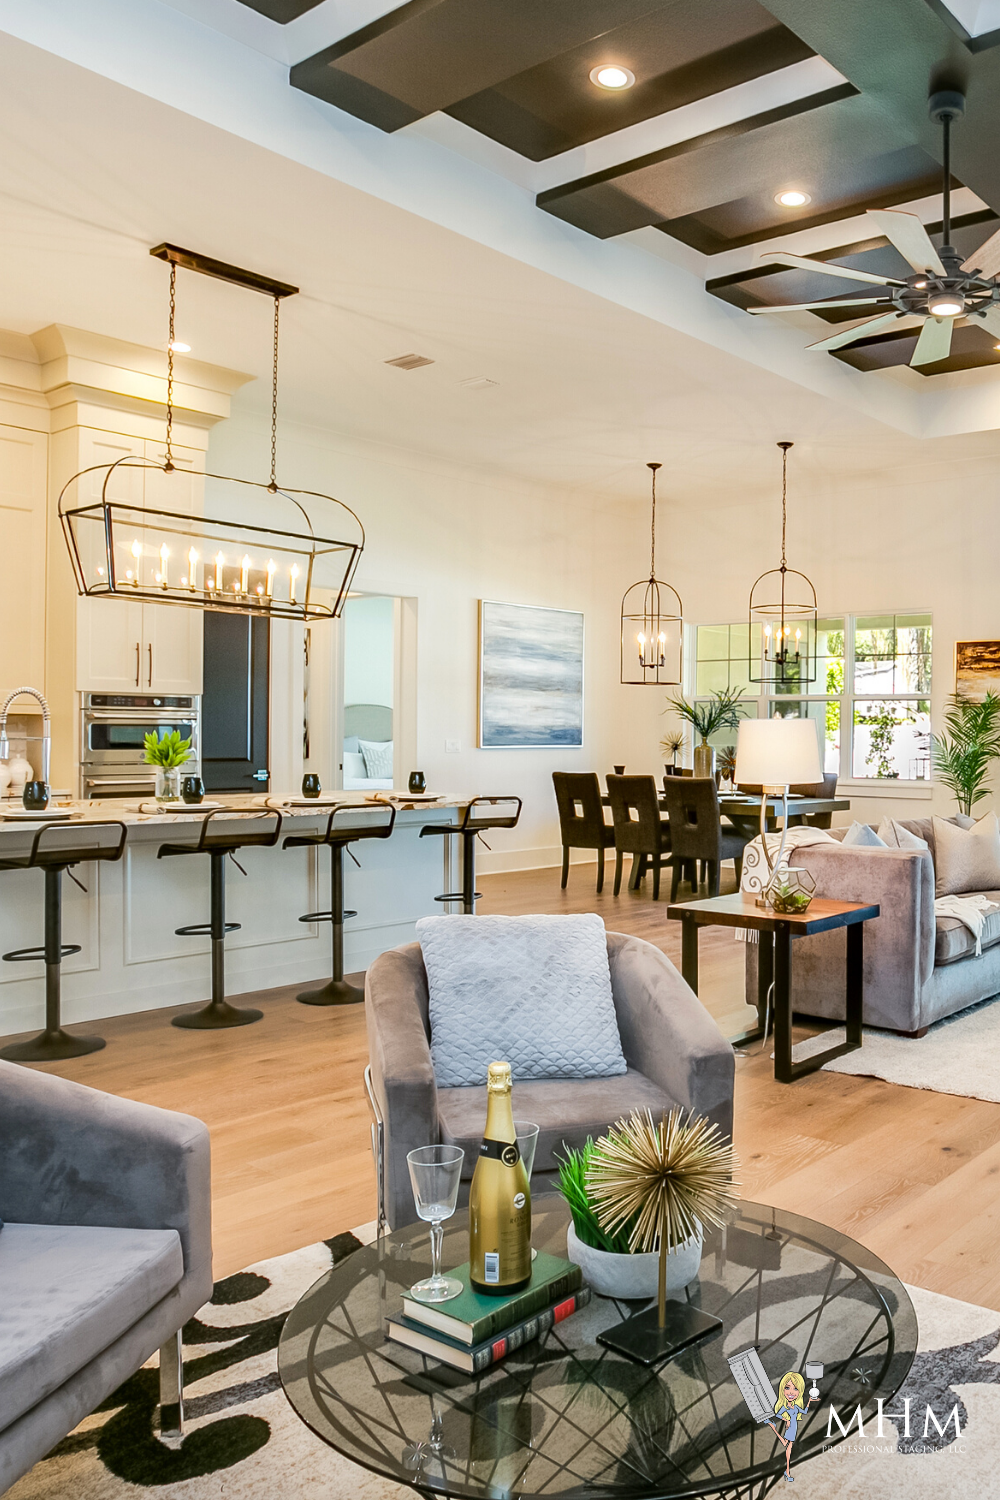 Mhm Professional Staging Orlando Home Staging Company Home Staging Home Home Staging Companies